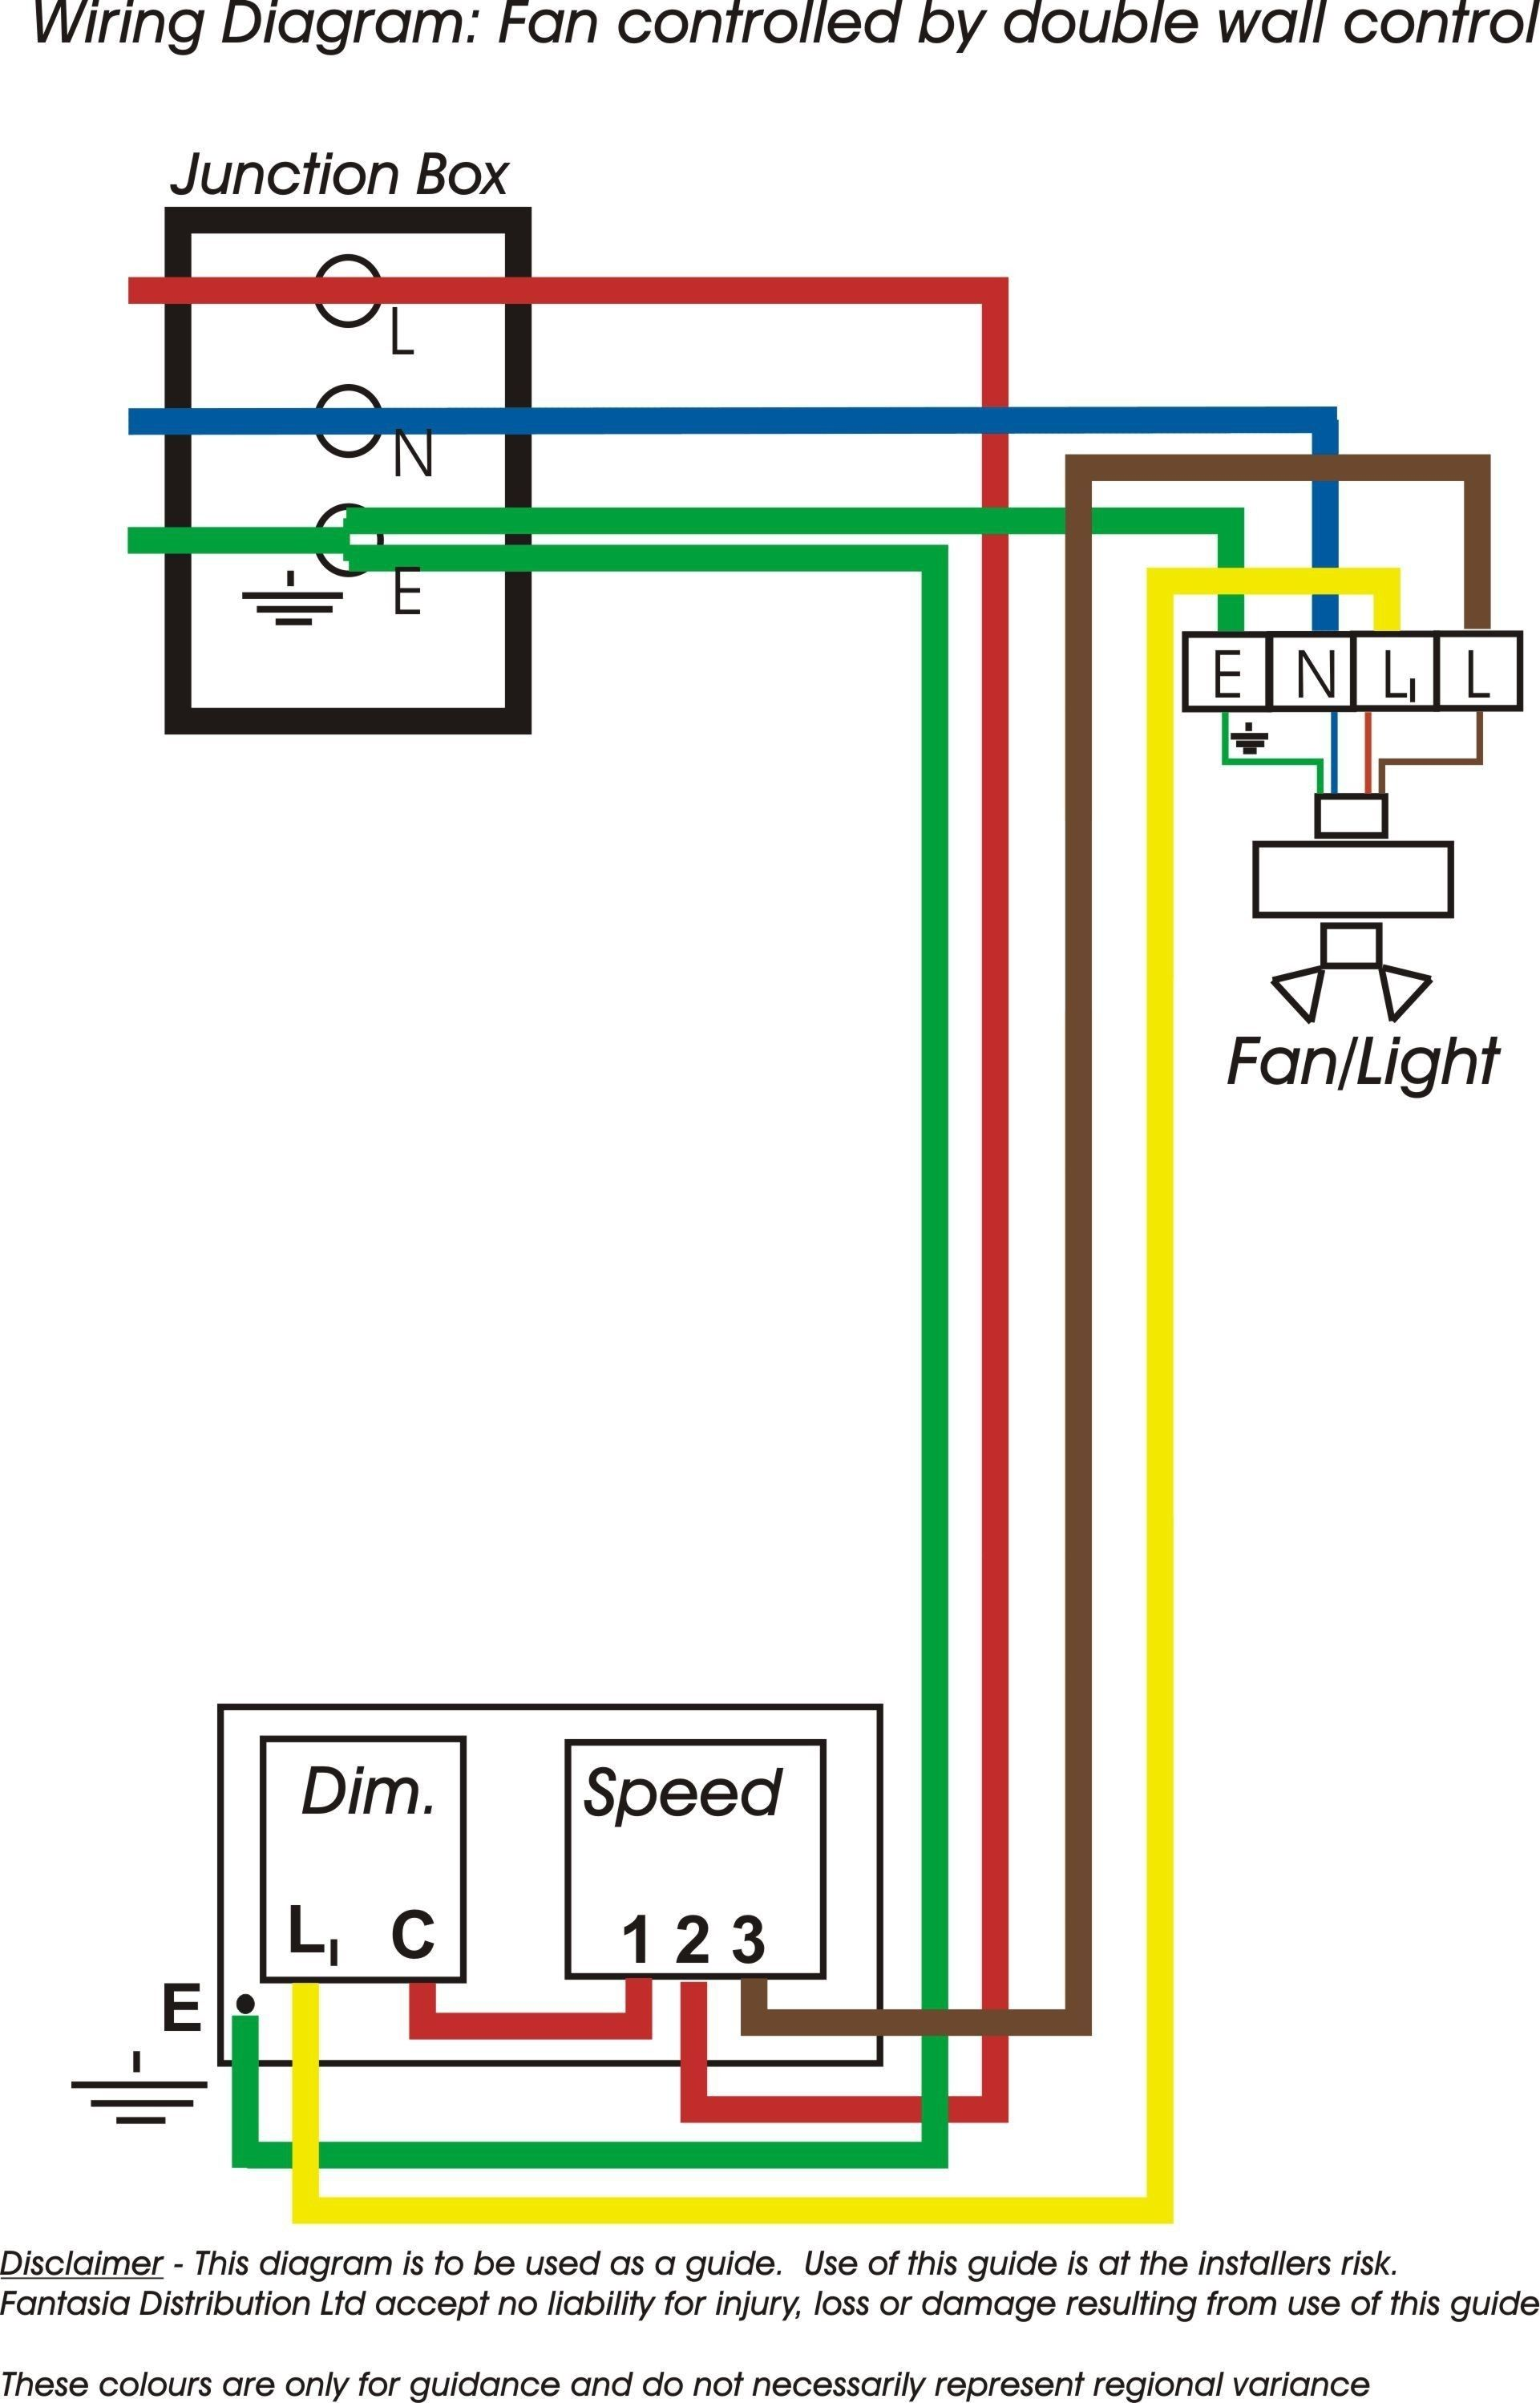 casablanca wiring diagram - wiring diagram data craftmade ceiling fan wiring diagram hampton bay ceiling fan wiring diagram tennisabtlg-tus-erfenbach.de